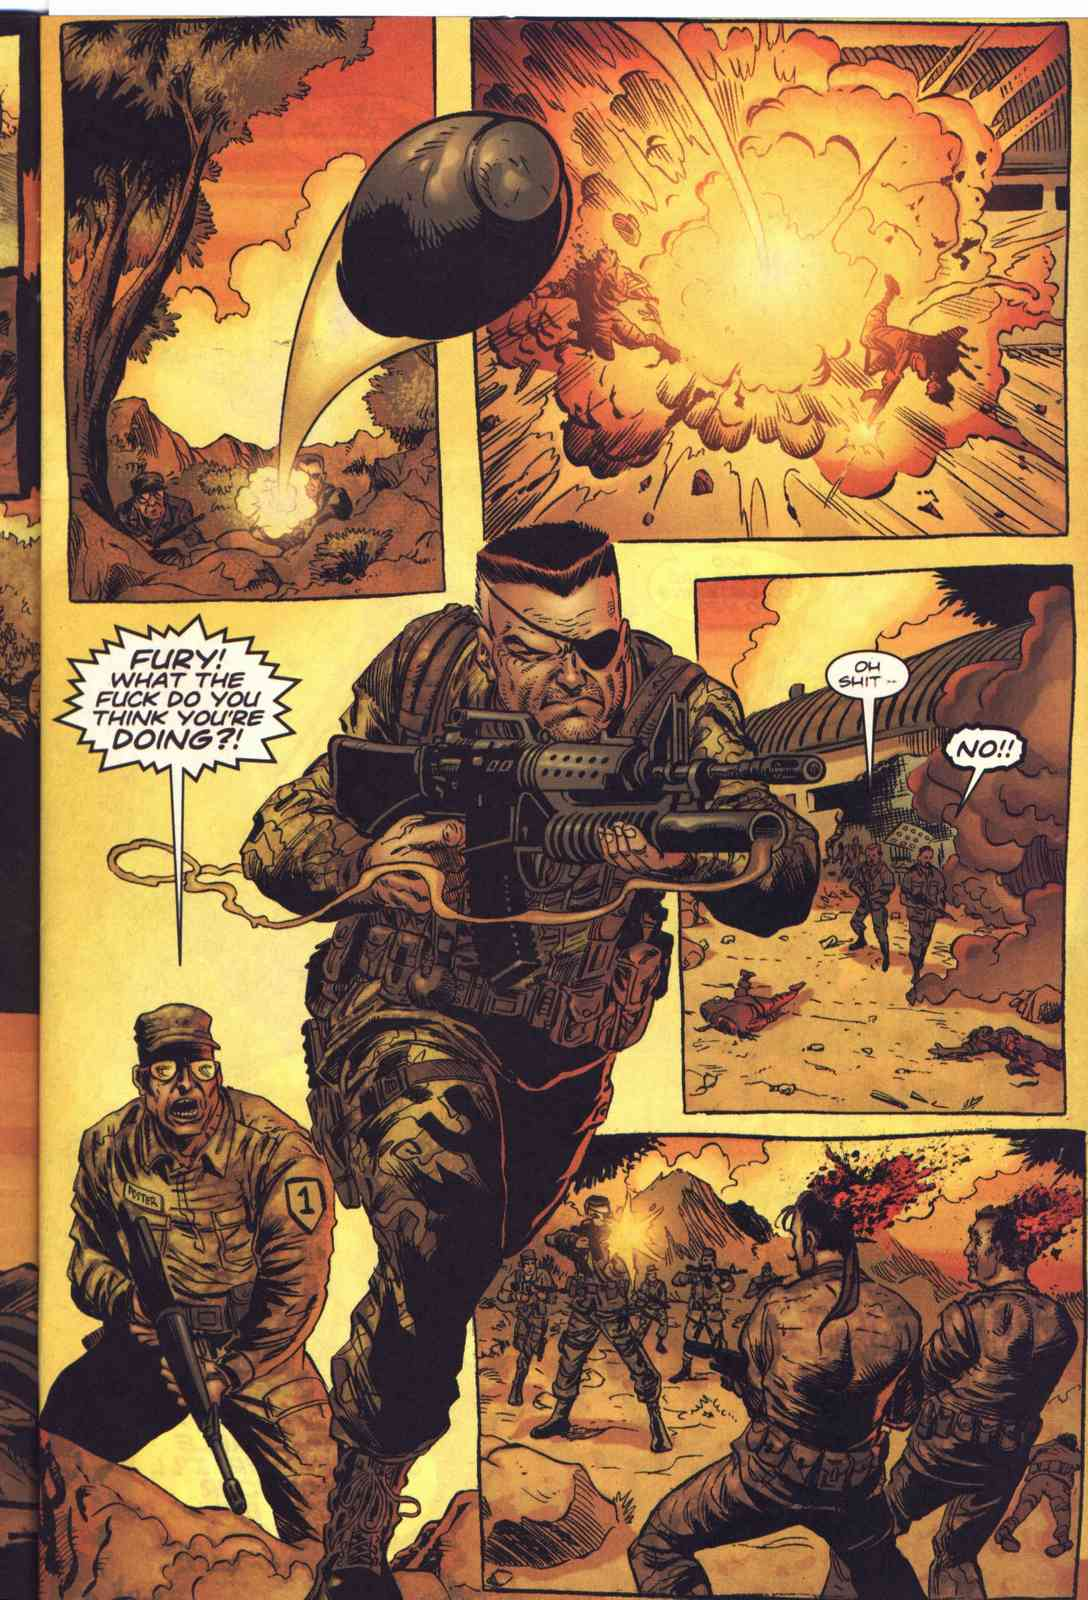 Read online Fury comic -  Issue #1 - 4